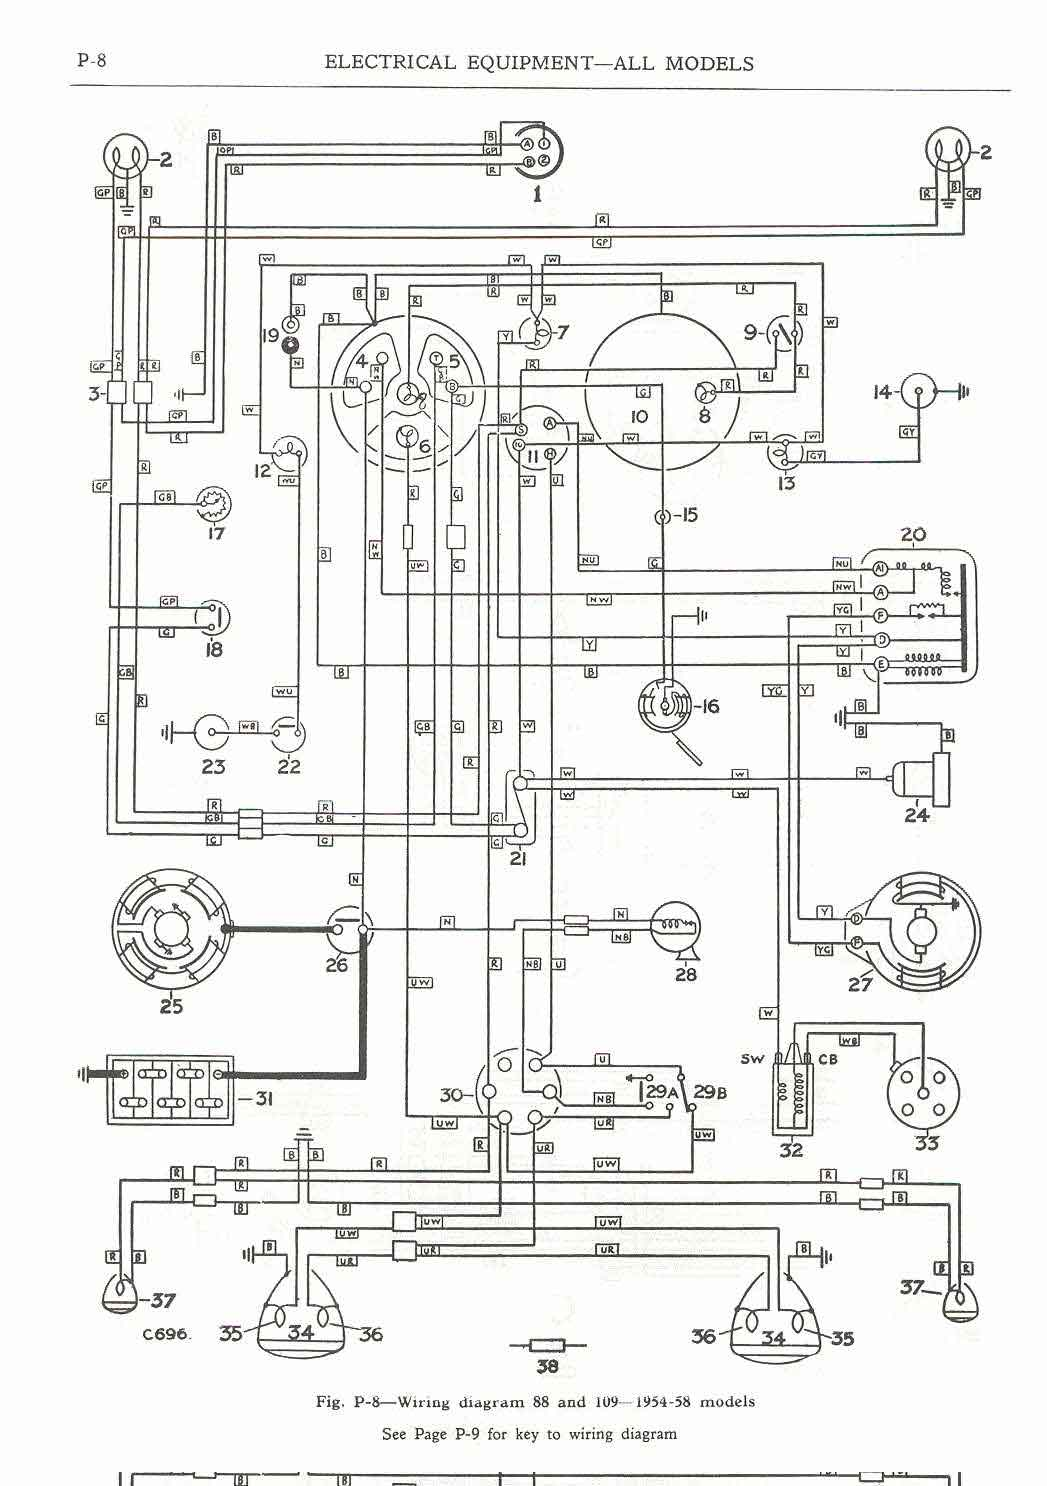 land rover discovery 1 electrical wiring diagram schematics wiring rh theanecdote co 2004 Ford Ranger Wiring Diagram 2004 Honda Civic Wiring Diagram